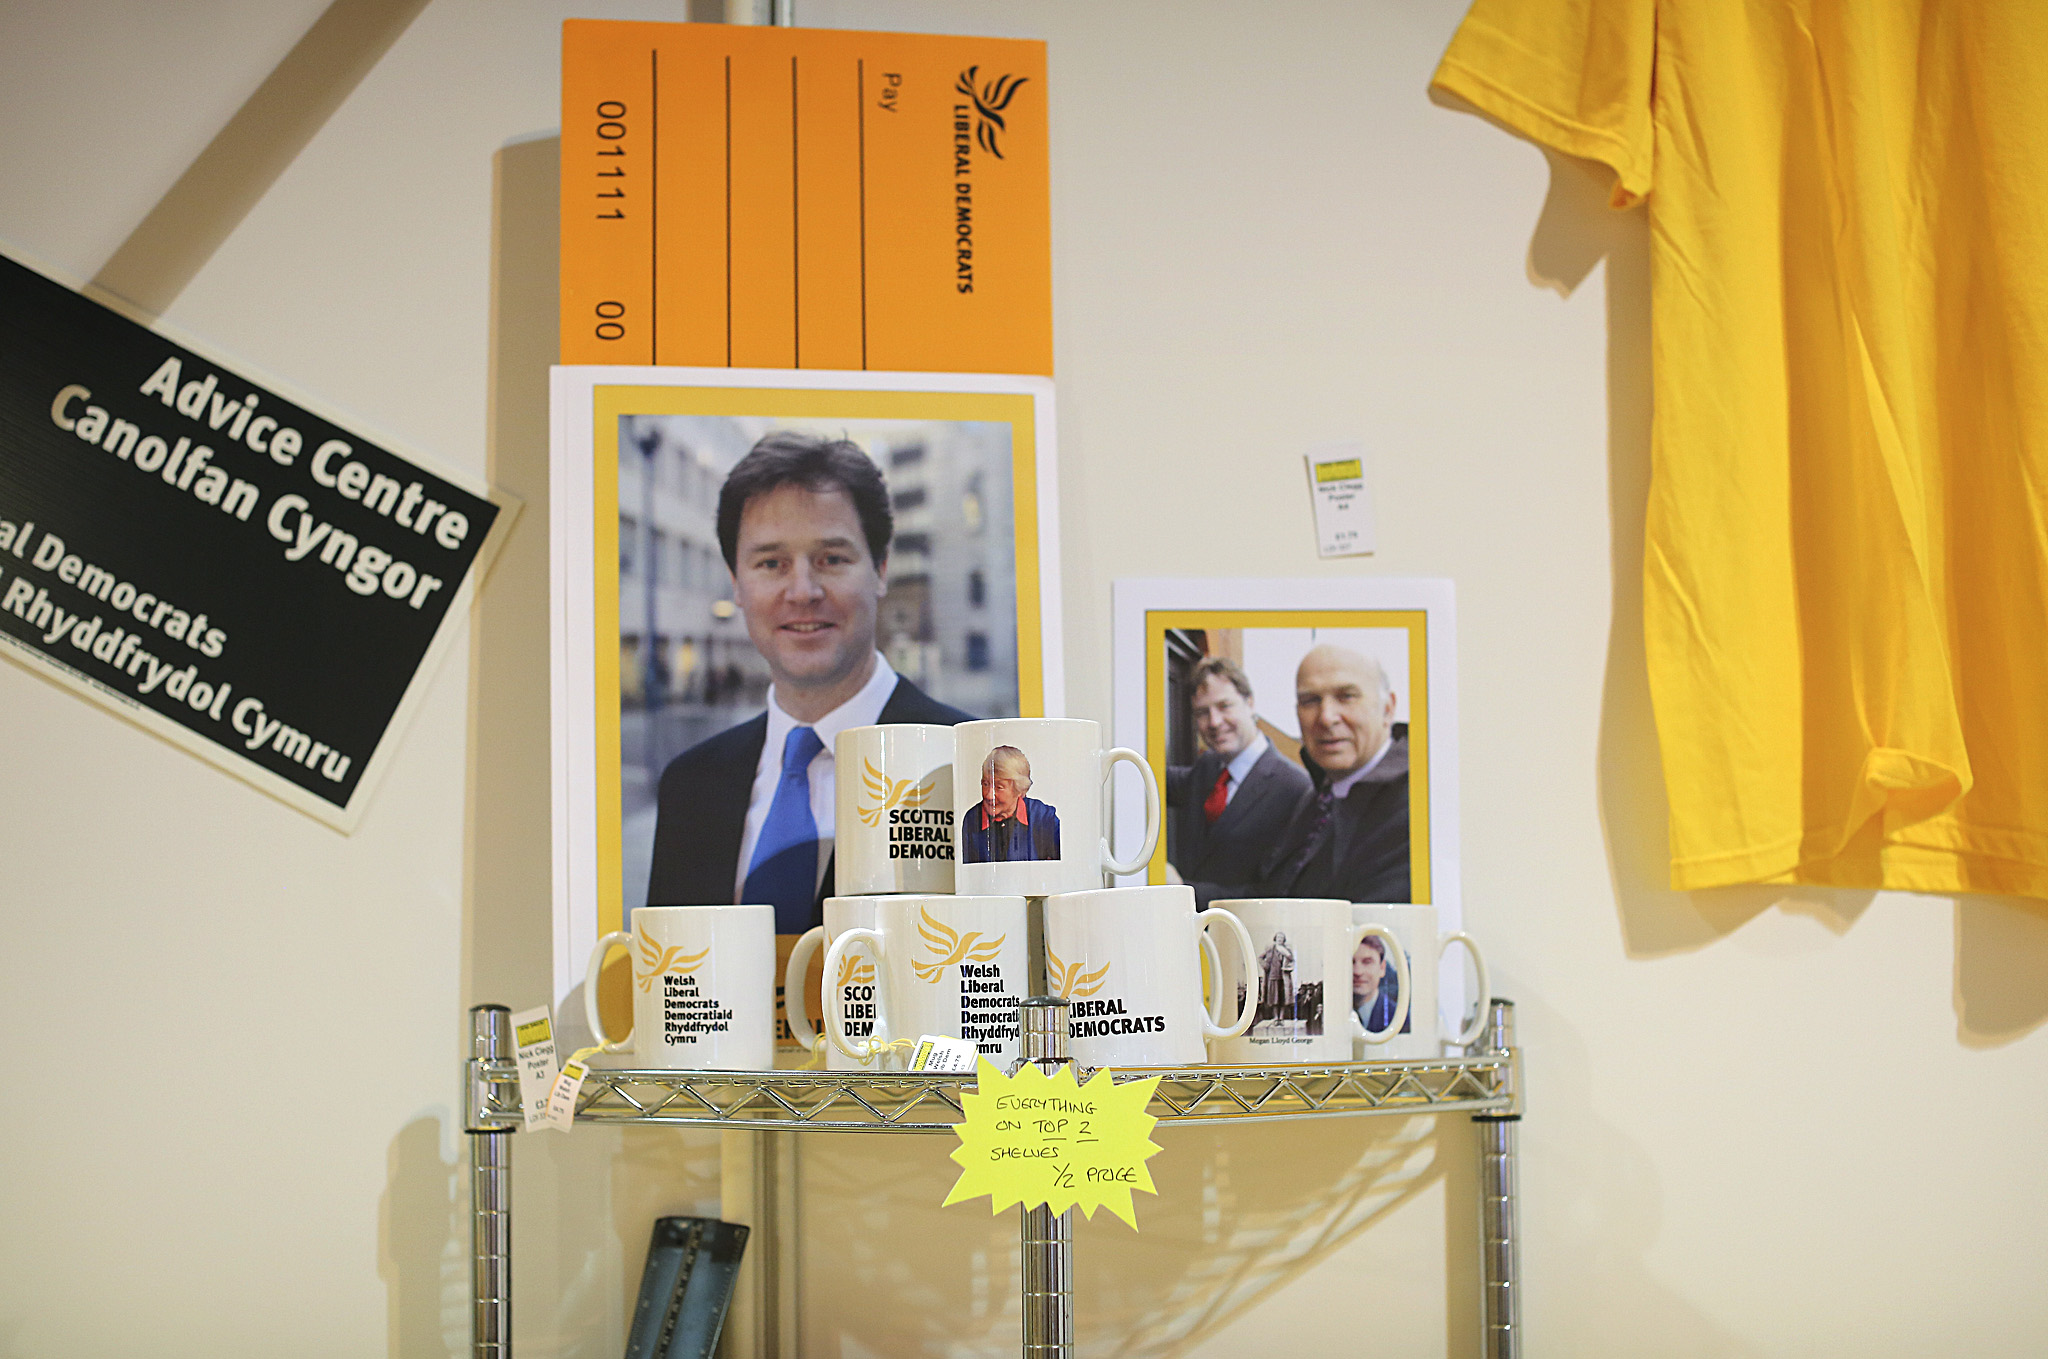 Delegates browse the Liberal Democrat merchandise stand at the Liberal Democrat conference in Glasgow this morning.